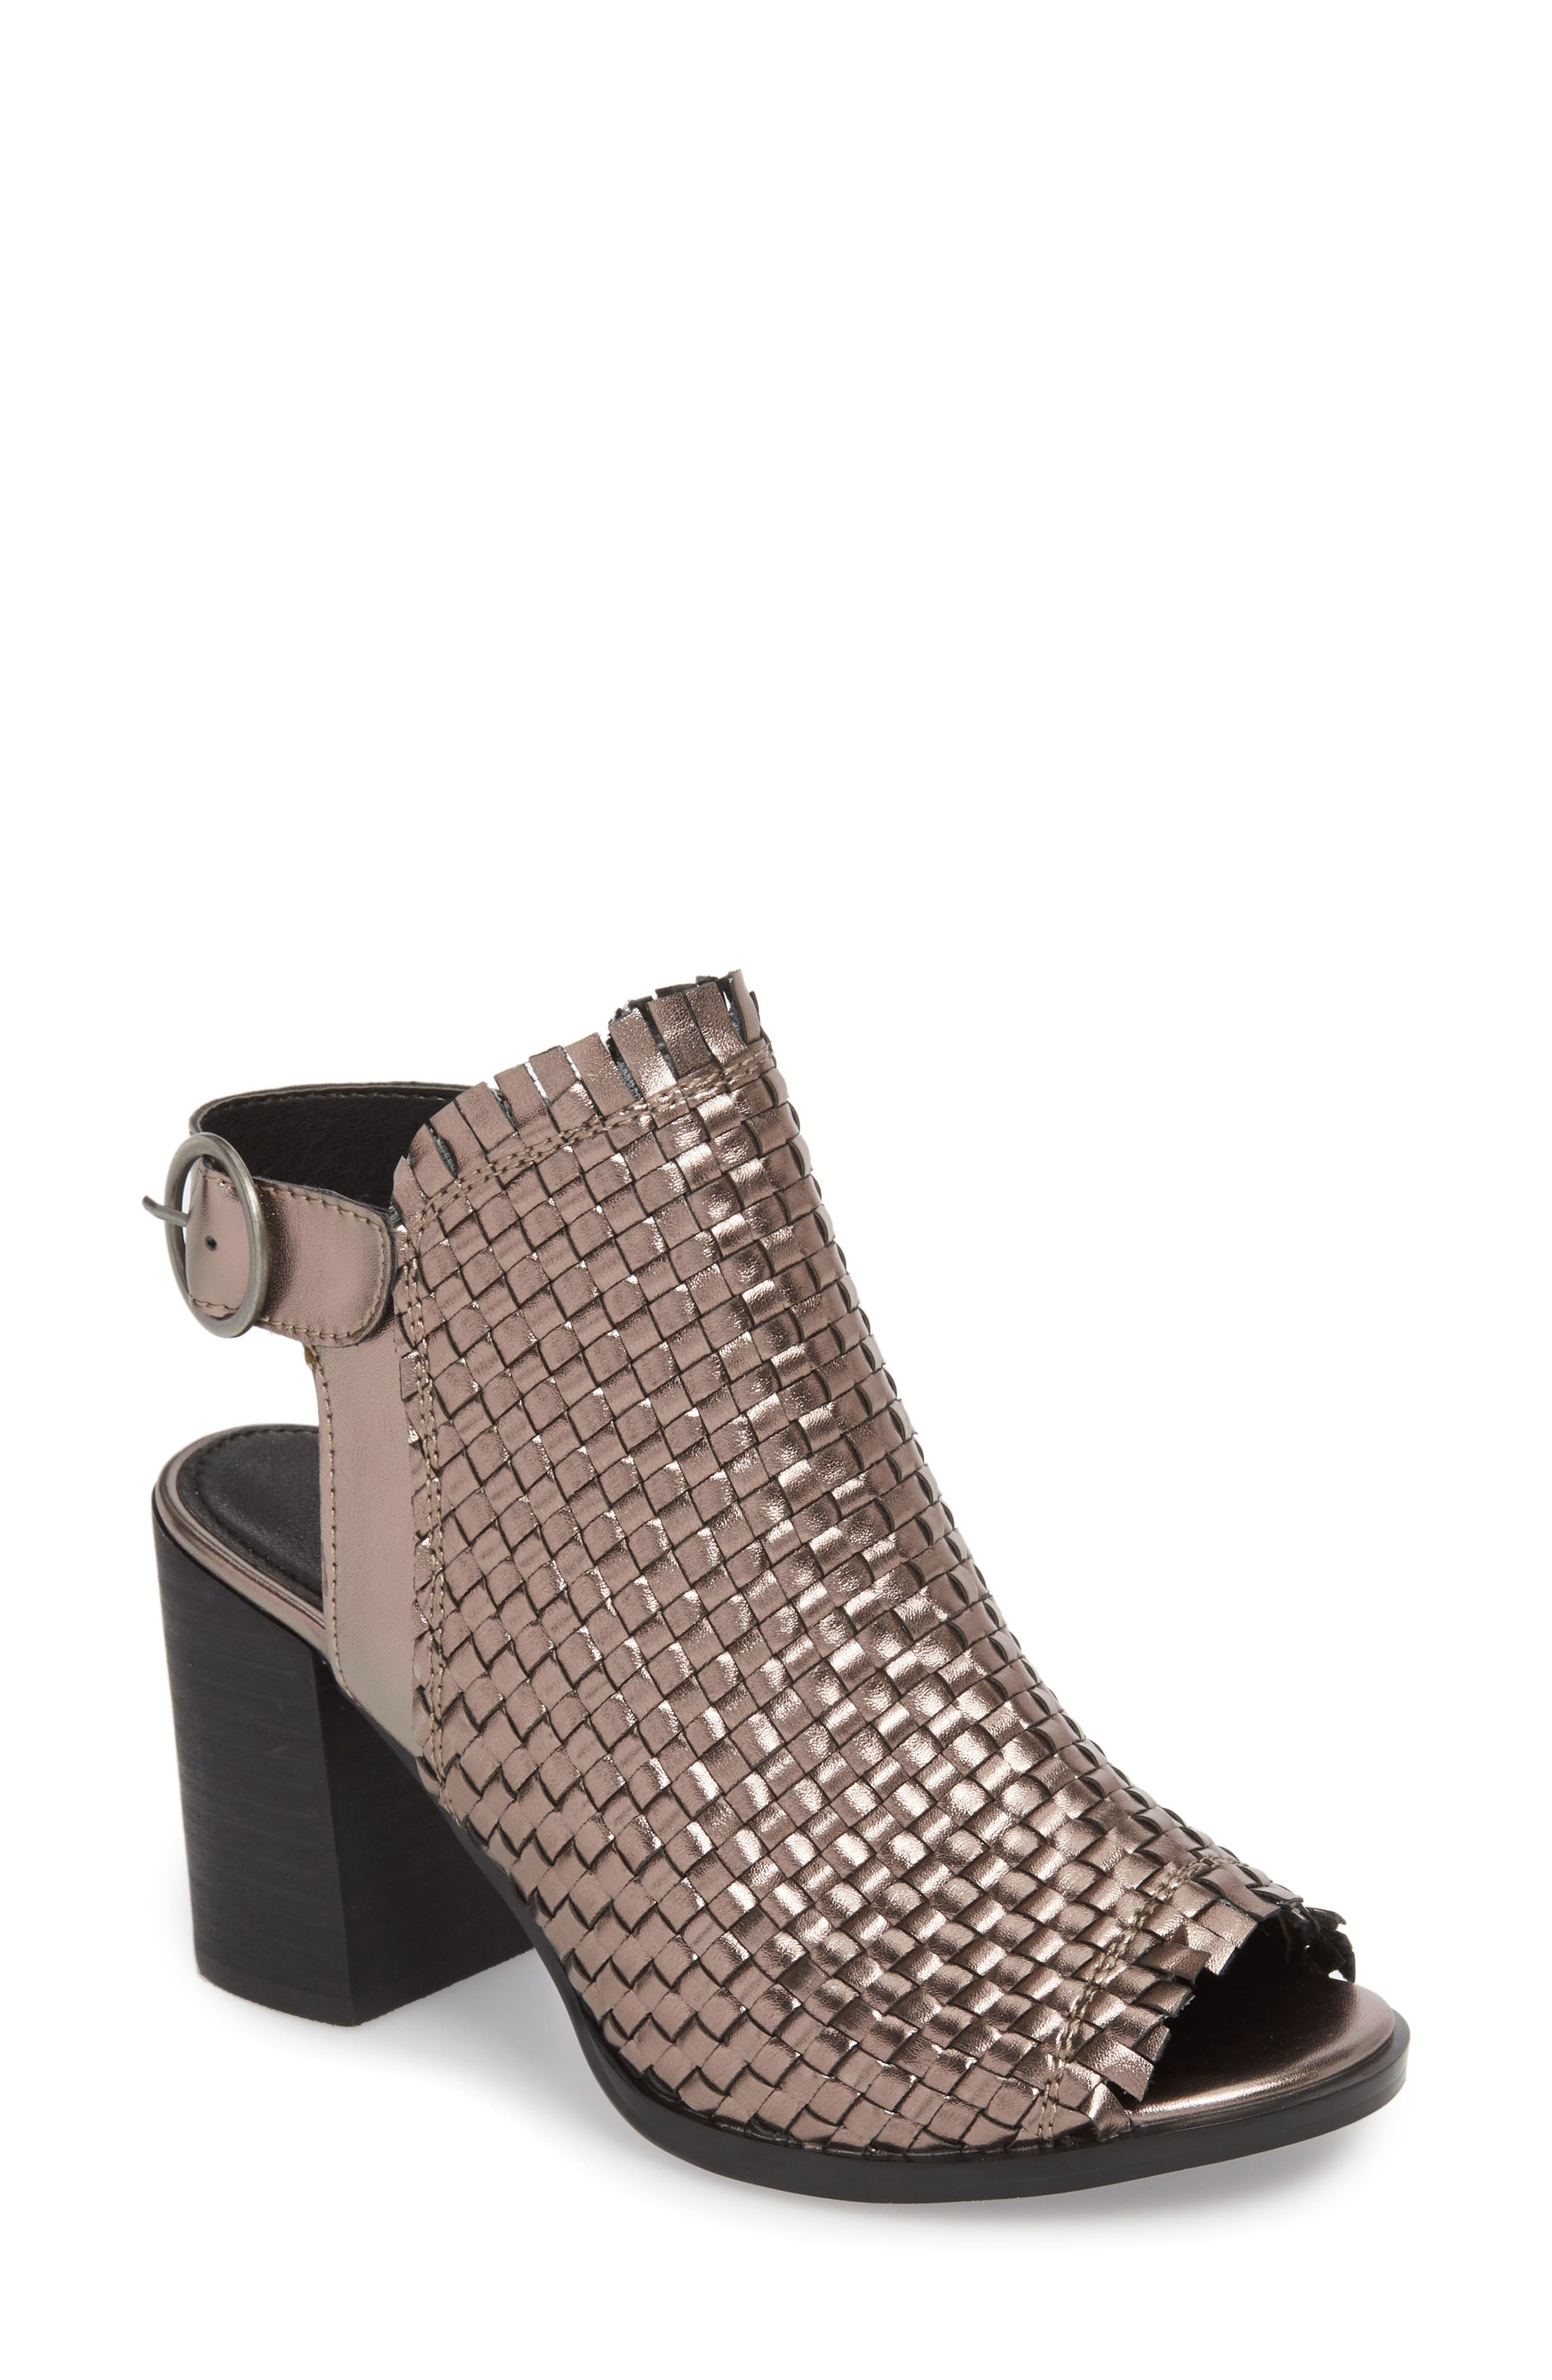 Starla Woven Sandal,                         Main,                         color, PEWTER